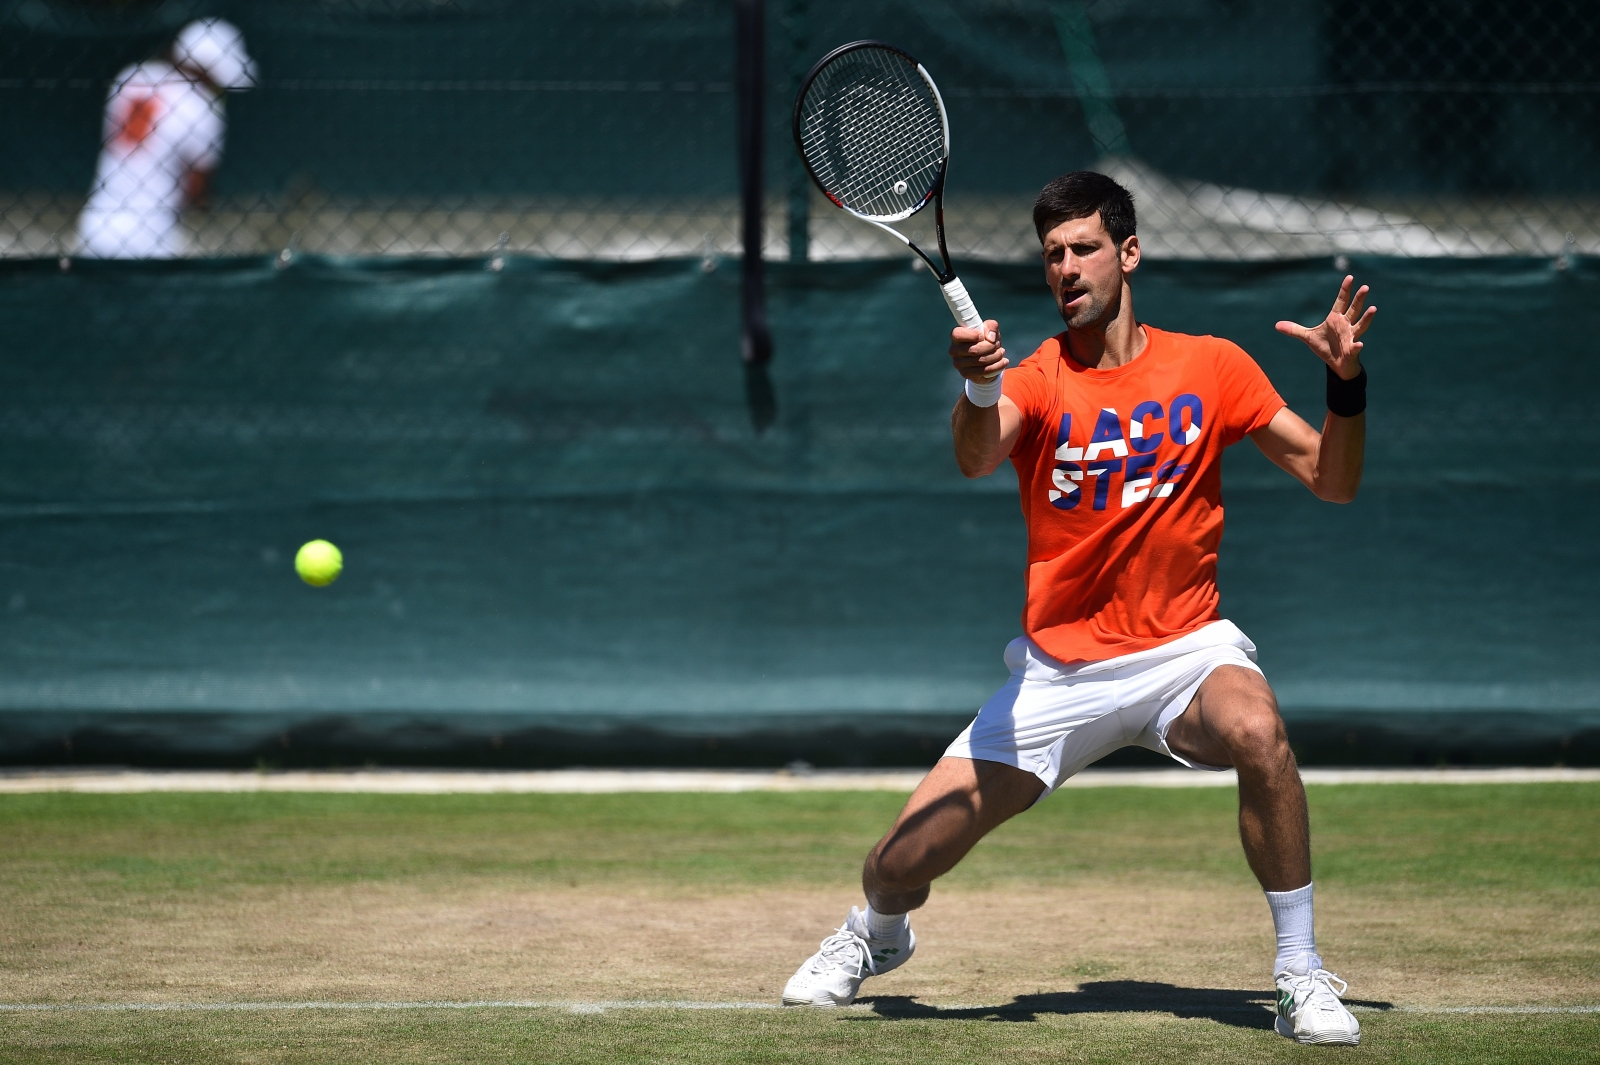 Novak Djokovic is coming to boil for Wimbledon